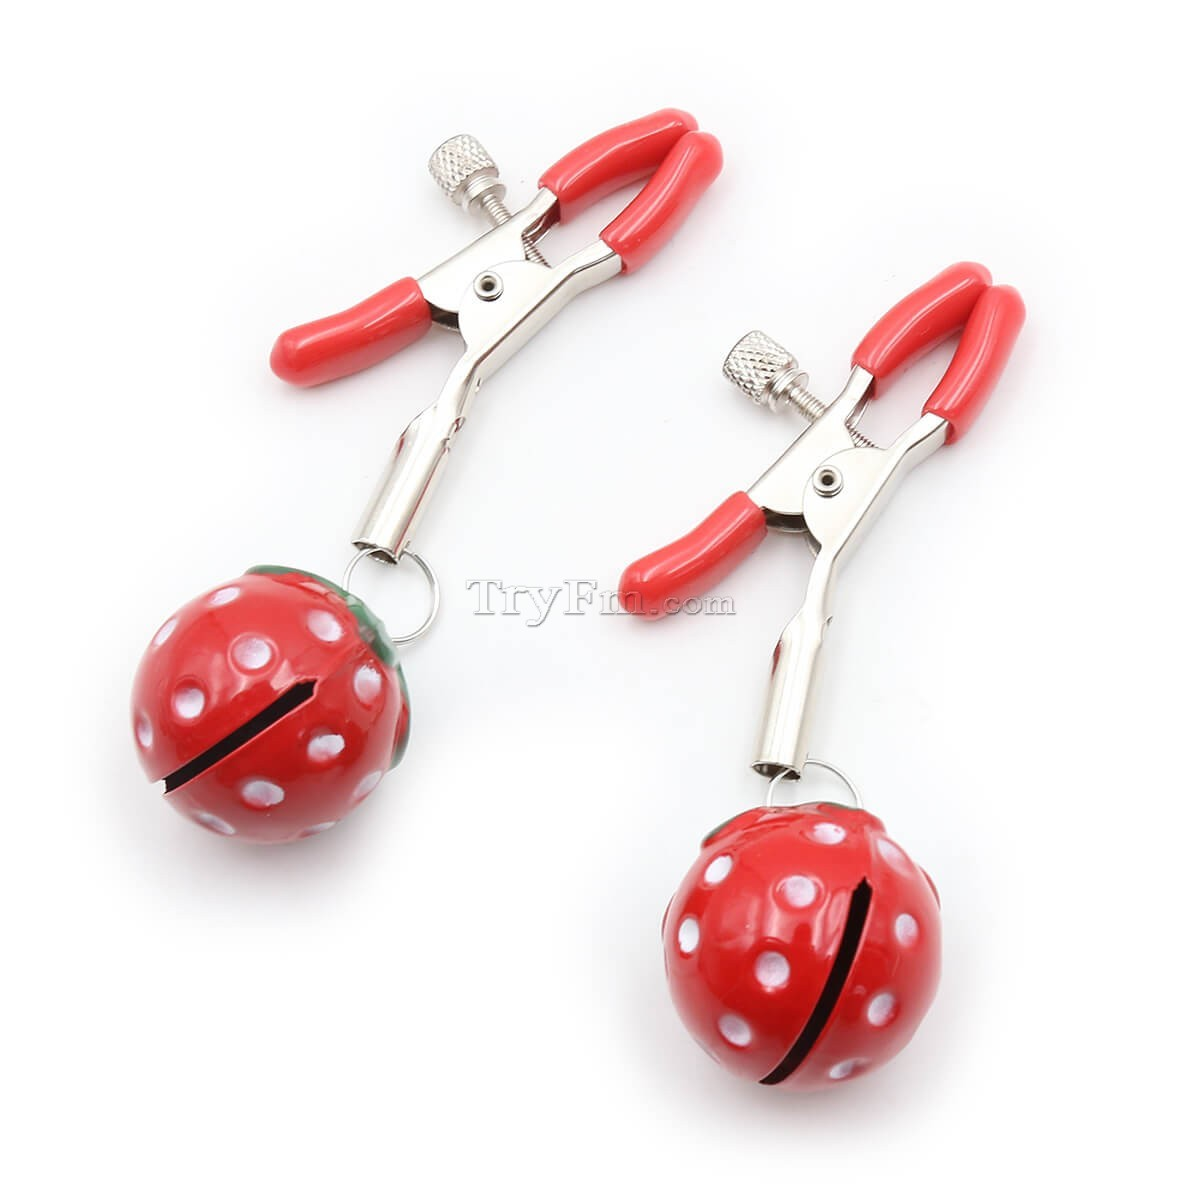 1-red-cherry-nipple-clamp5.jpg